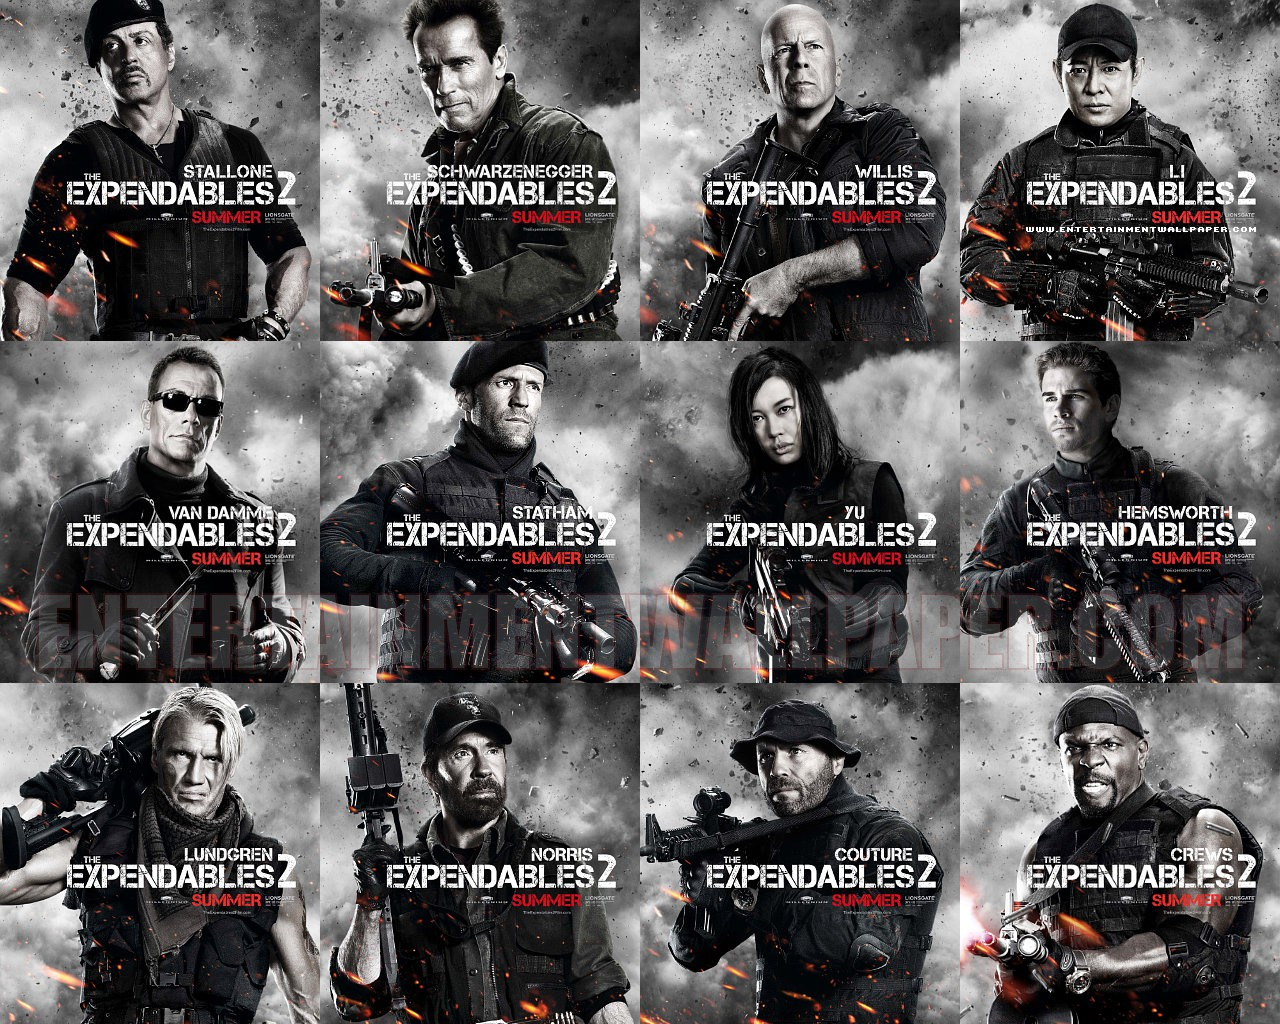 ee60c-the-expendables-2-045b15d